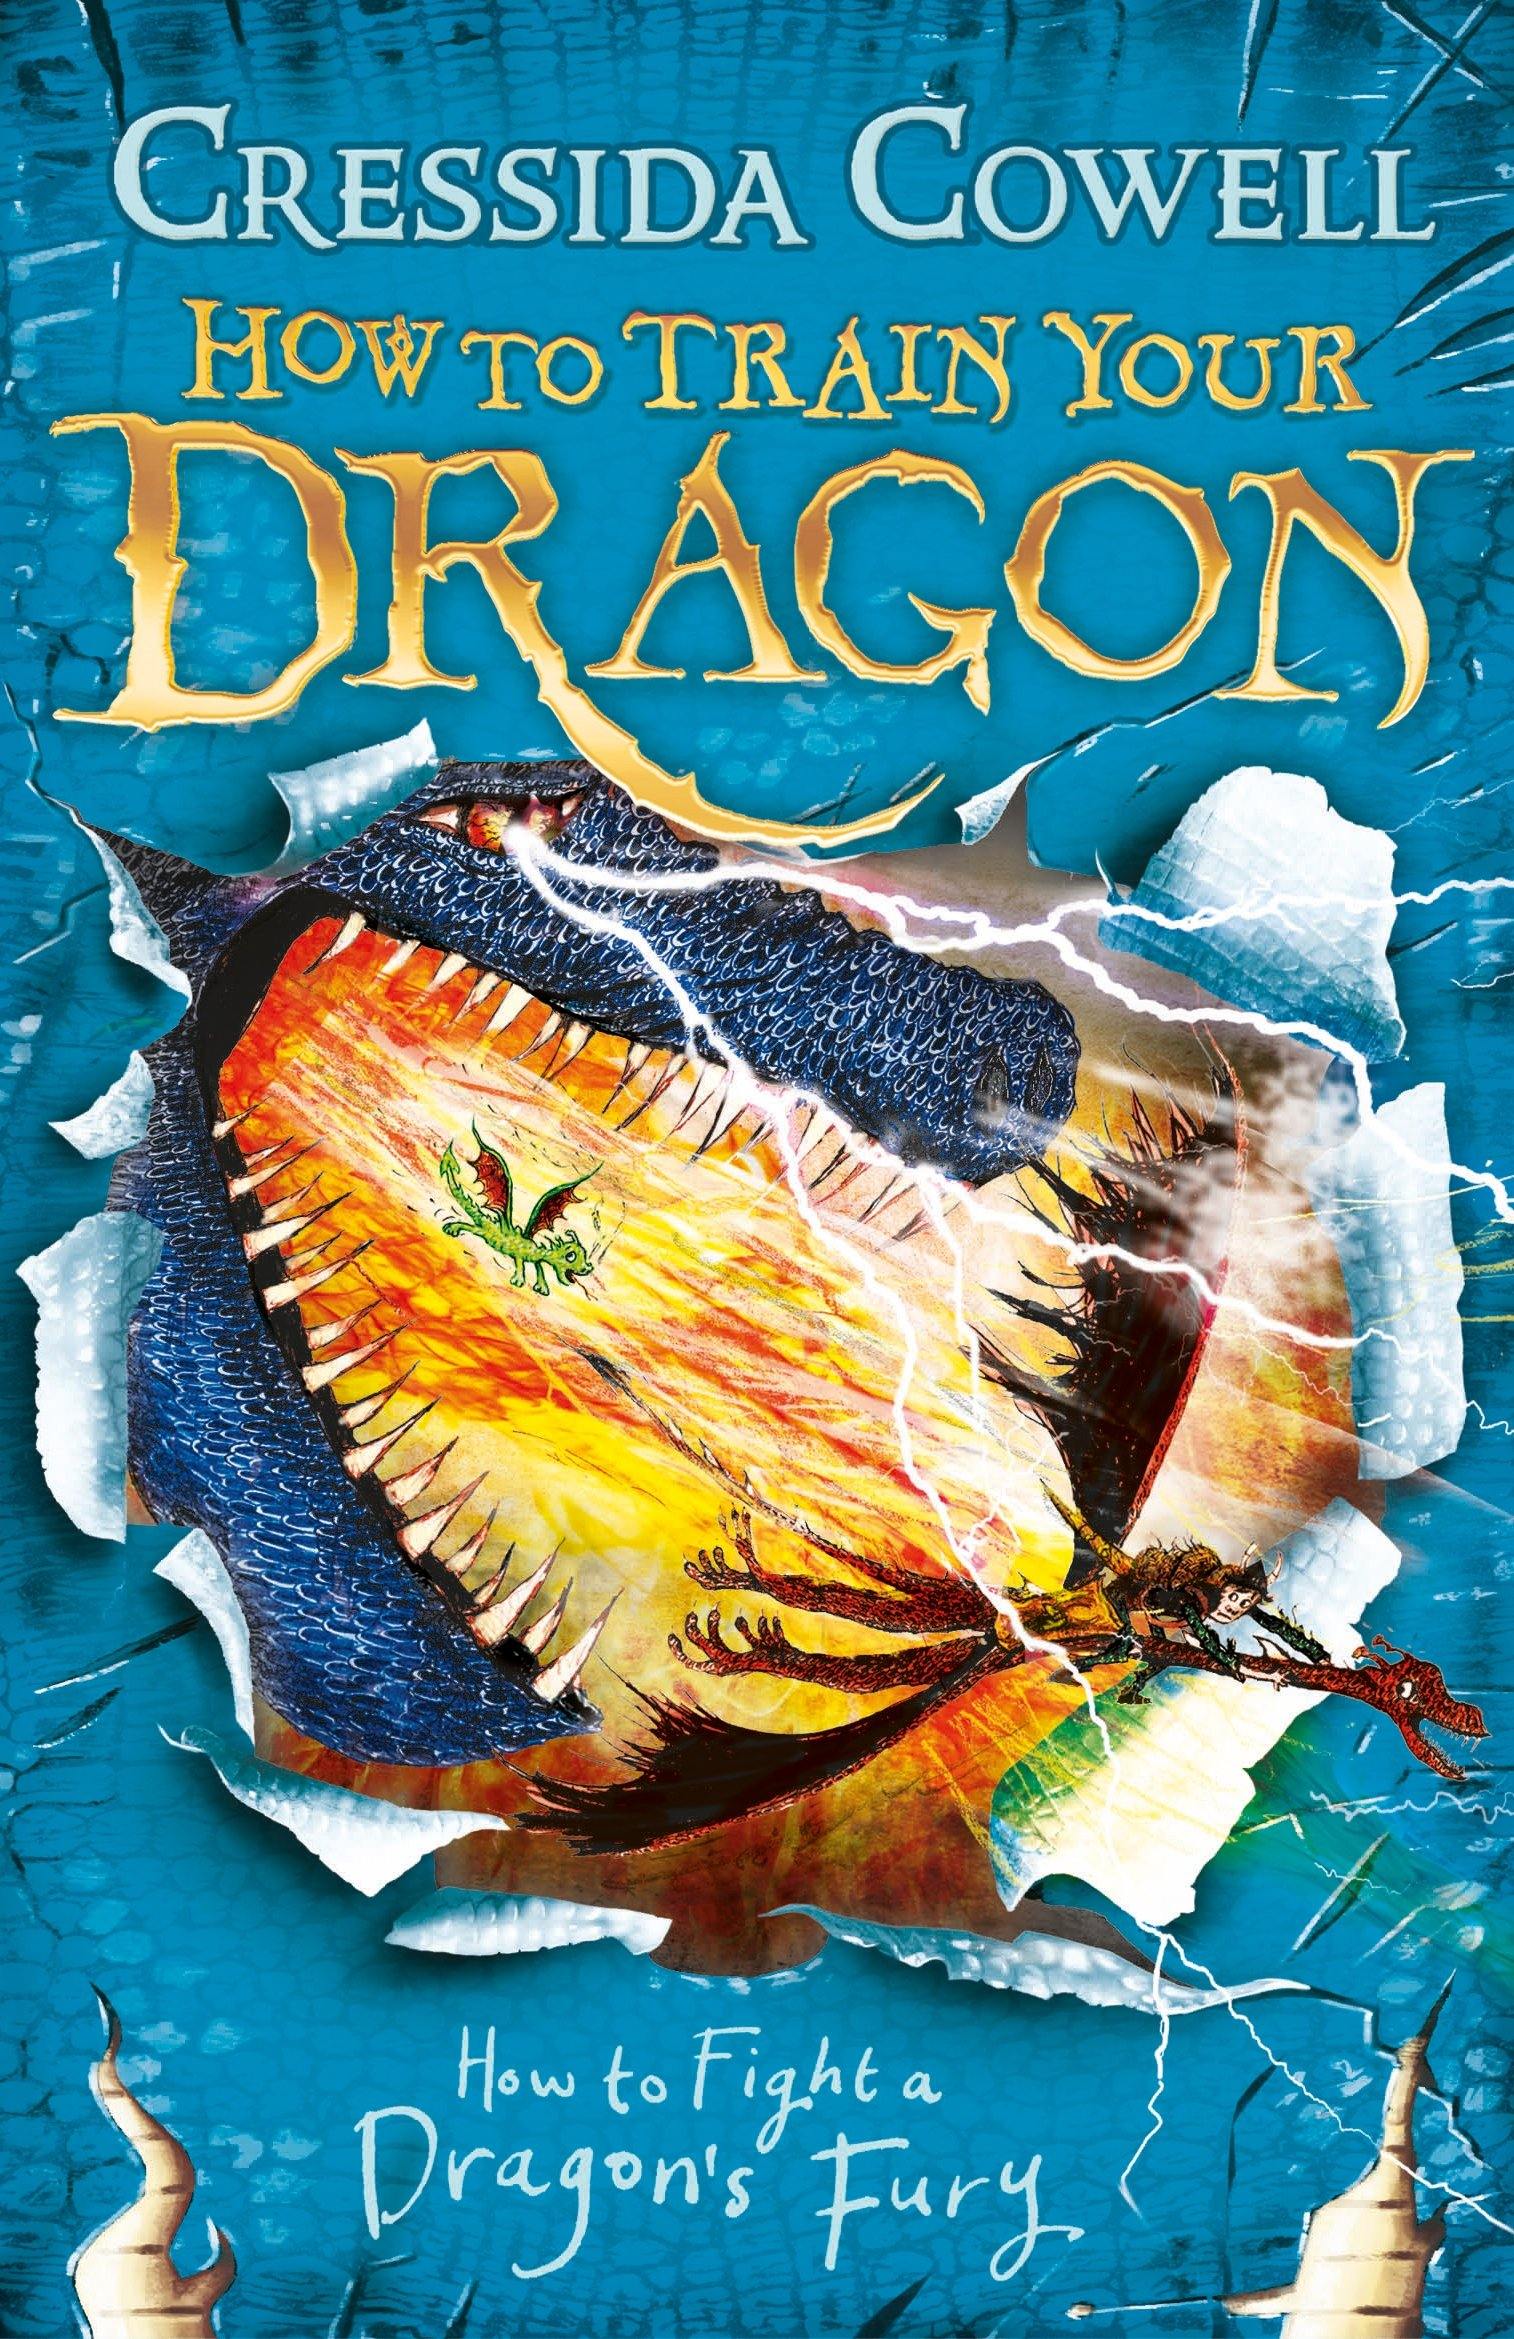 How to Fight a Dragon's Fury: Book 12 (How to Train Your Dragon, Band 12)